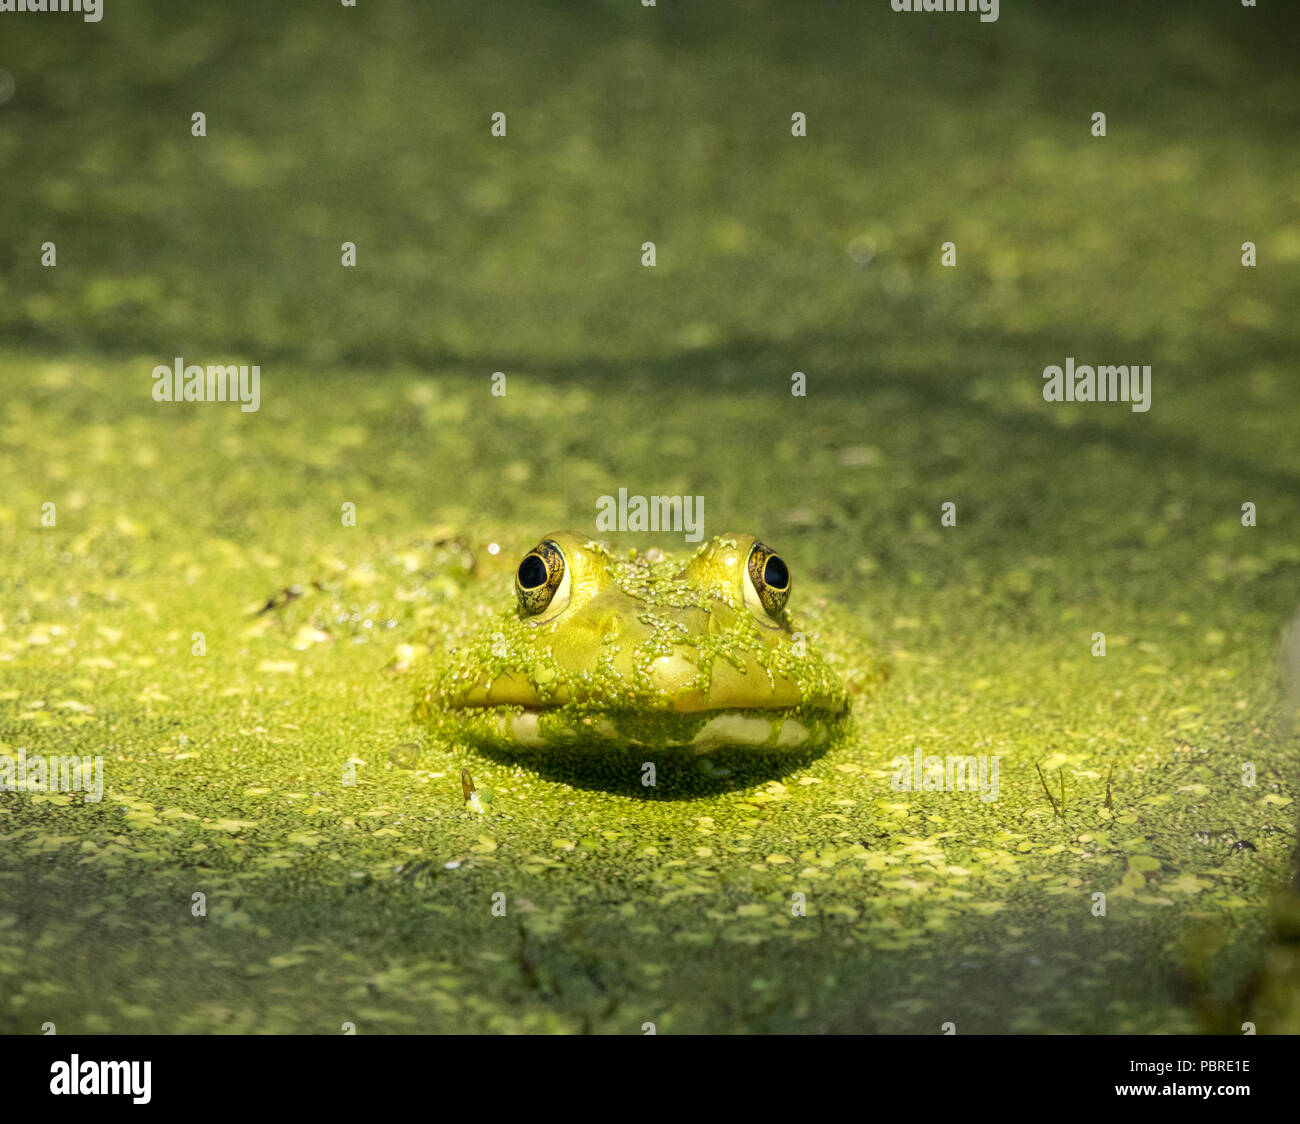 Grenouille dans full camo Photo Stock